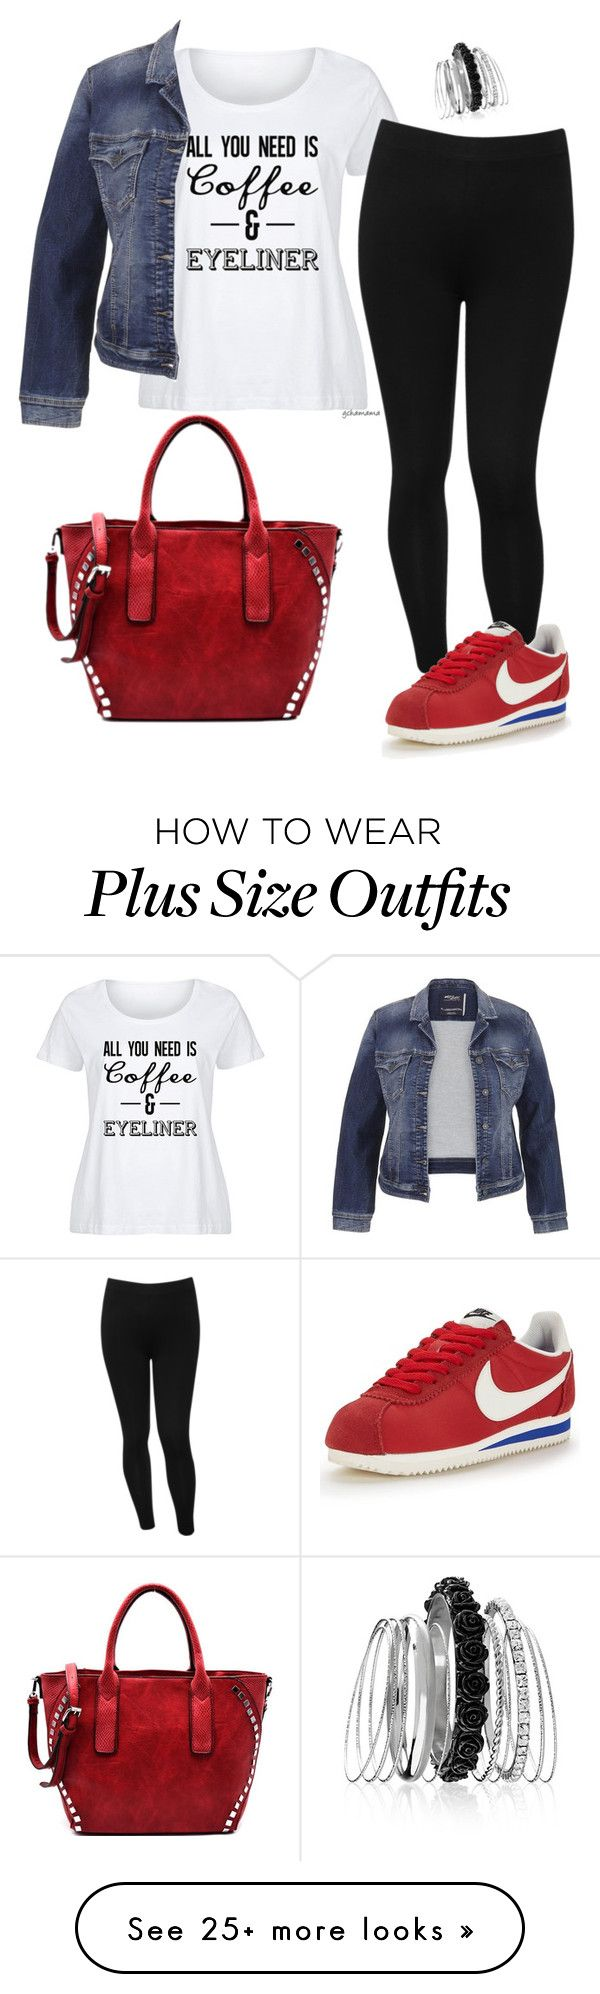 """Wake up, makeup- plus size"" by gchamama on Polyvore featuring LC Trendz, M&Co, maurices, Avenue, NIKE and plus size clothing"